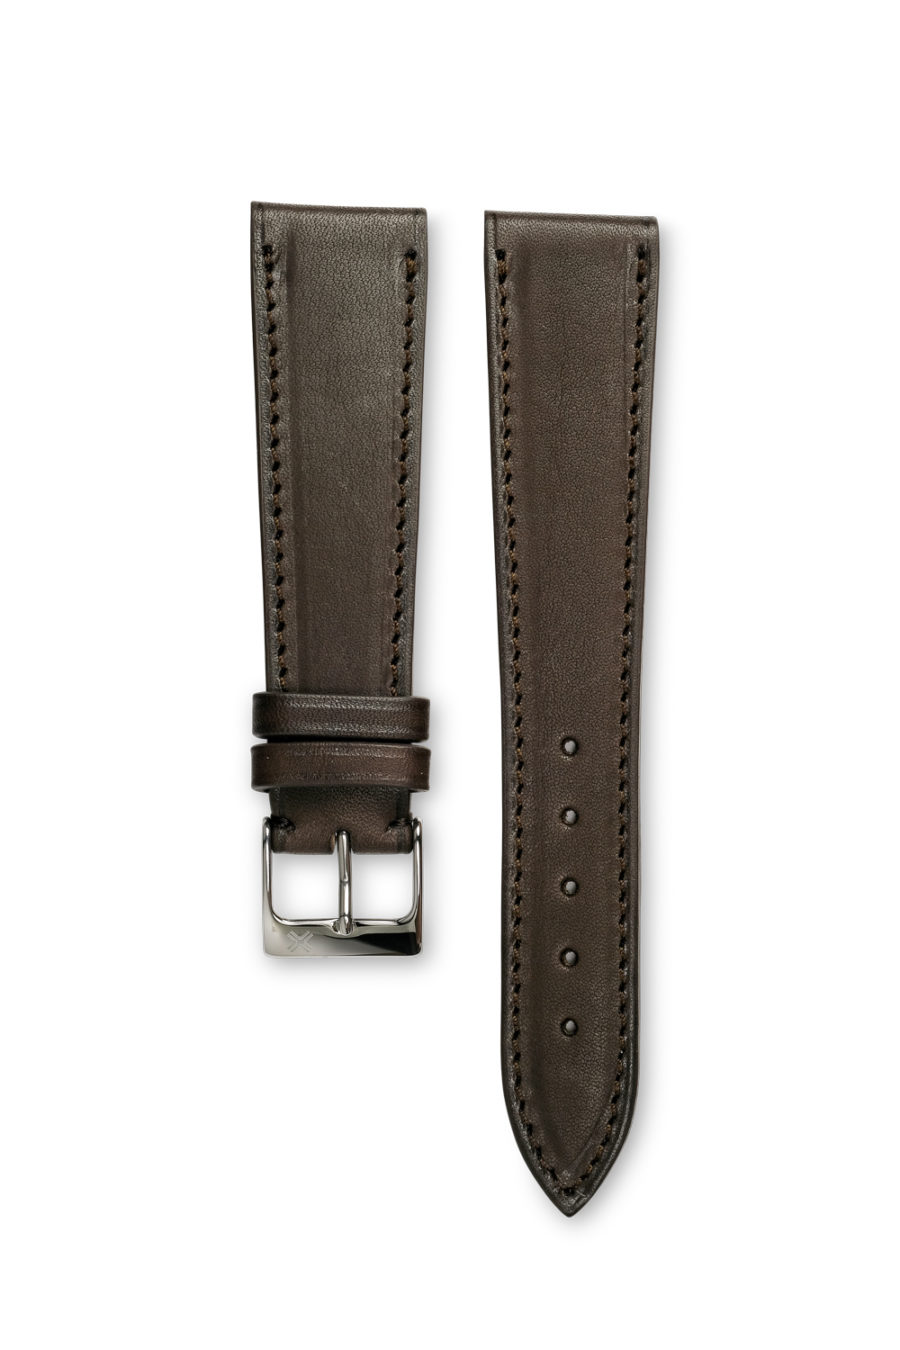 Smooth Classic Barenia chocolate brown leather watch strap - tone on tone stitching - LUGS brand